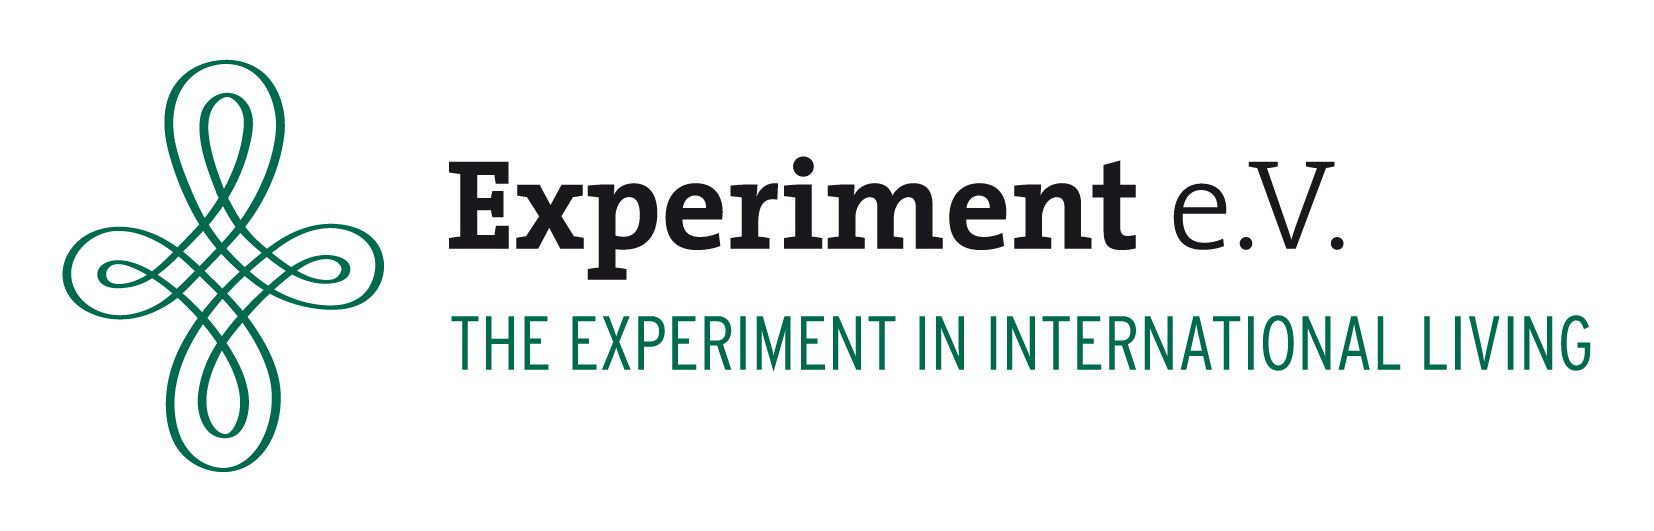 Logo von Experiment e.V. - The Experiment in International Living © Experiment e.V. - The Experiment in International Living